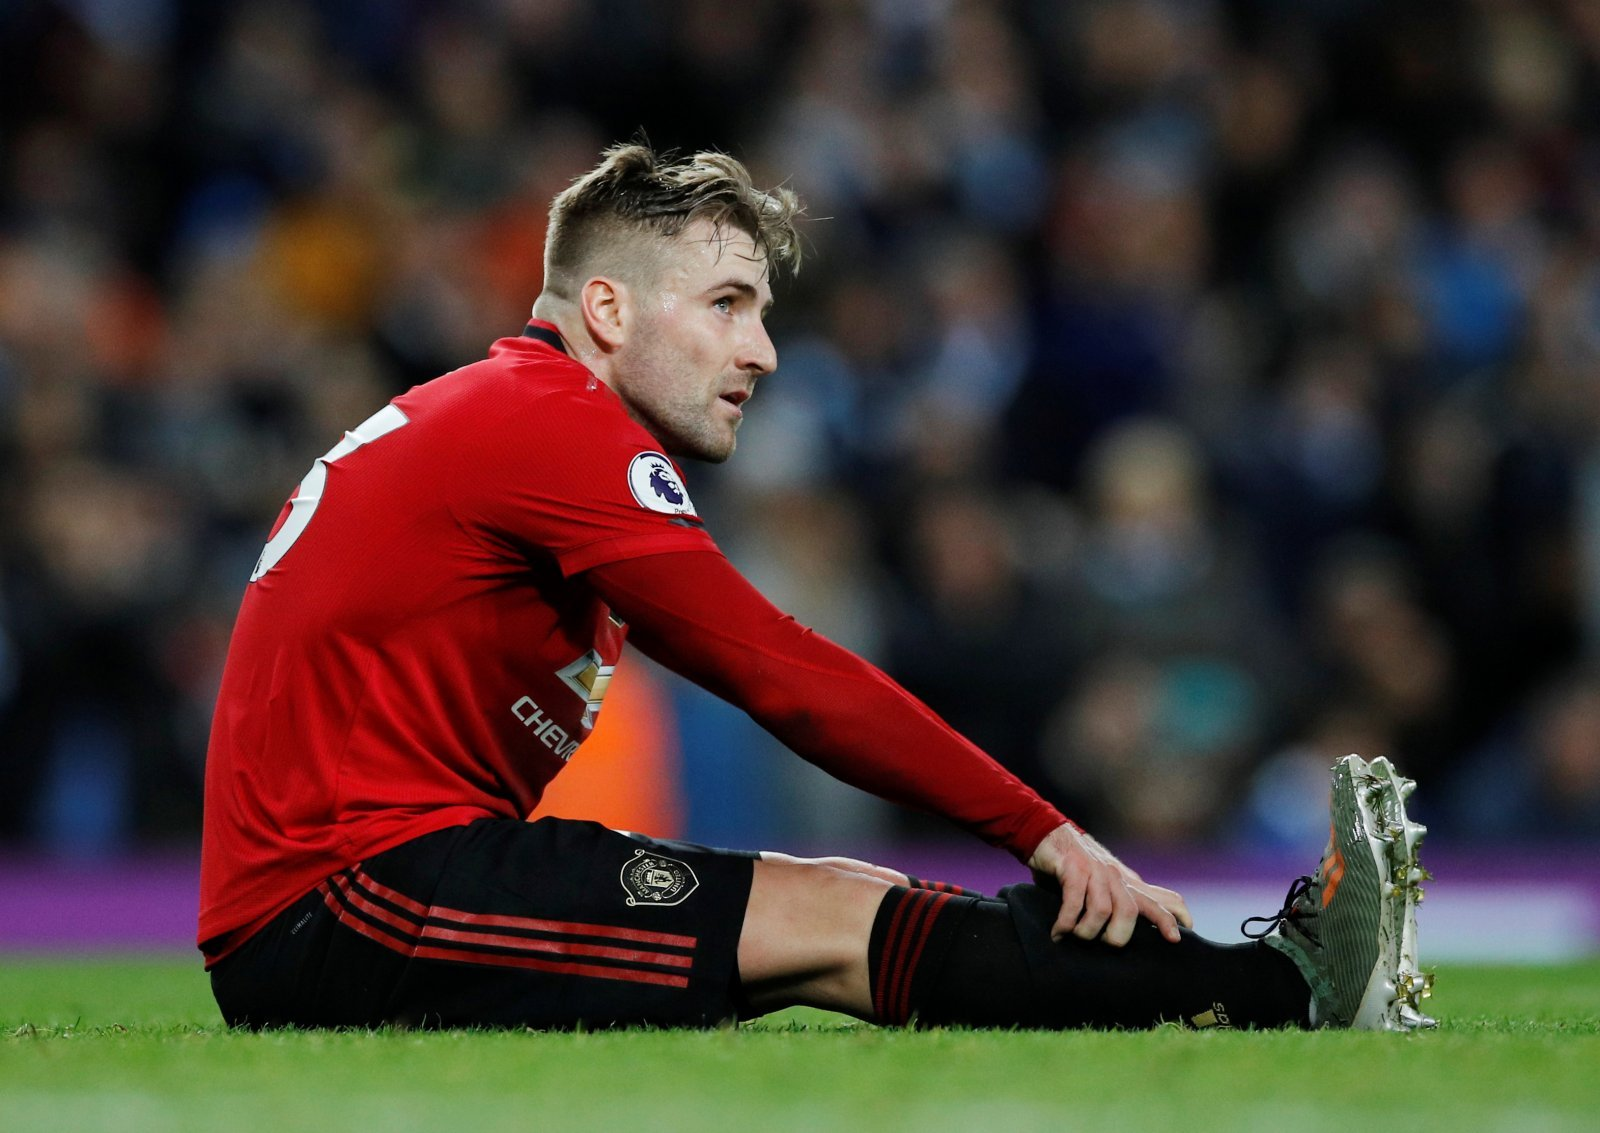 Manchester United: Fans appeal to sell Luke Shaw amid reported Leicester interest